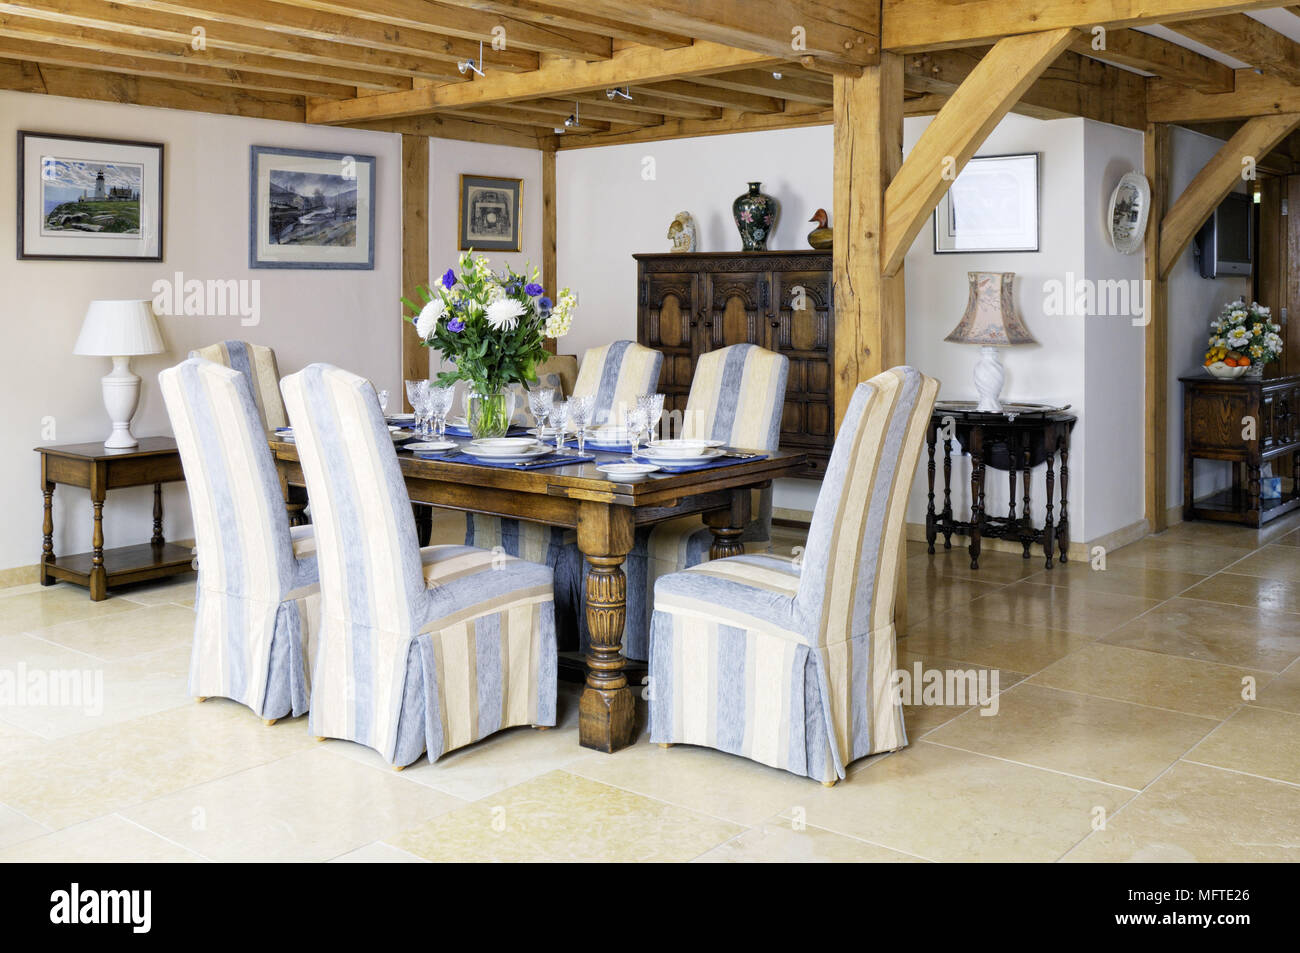 Upholstered Chairs At Wooden Table In Modern Country Style Dining Room